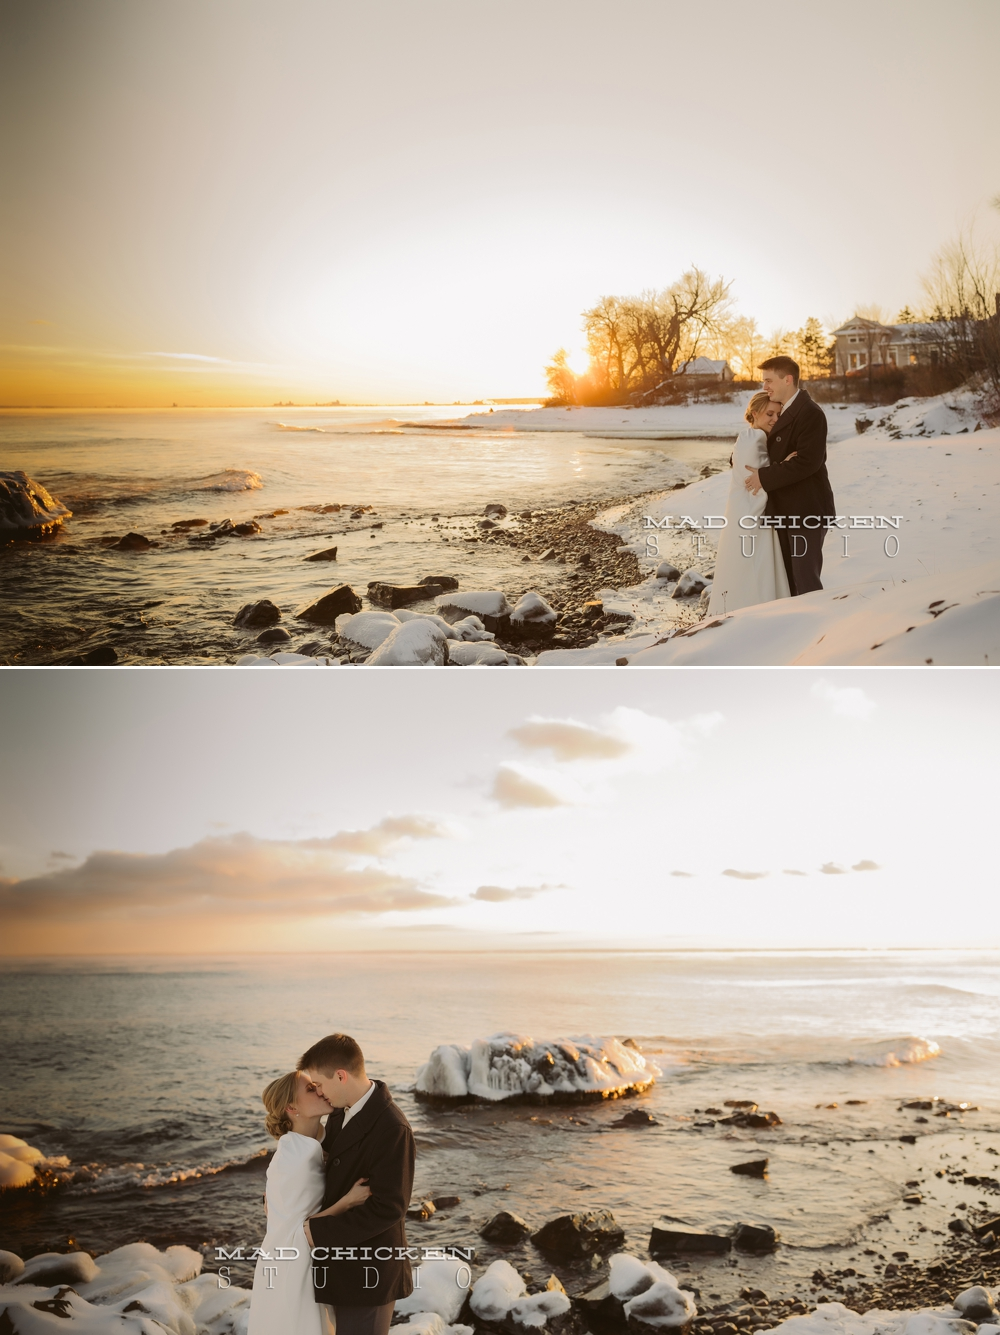 Parker and Nicole on the shore of Lake Superior in Duluth, MN on their wedding day photographed by Jes Hayes of Mad Chicken Studio | Duluth Wedding Photographer